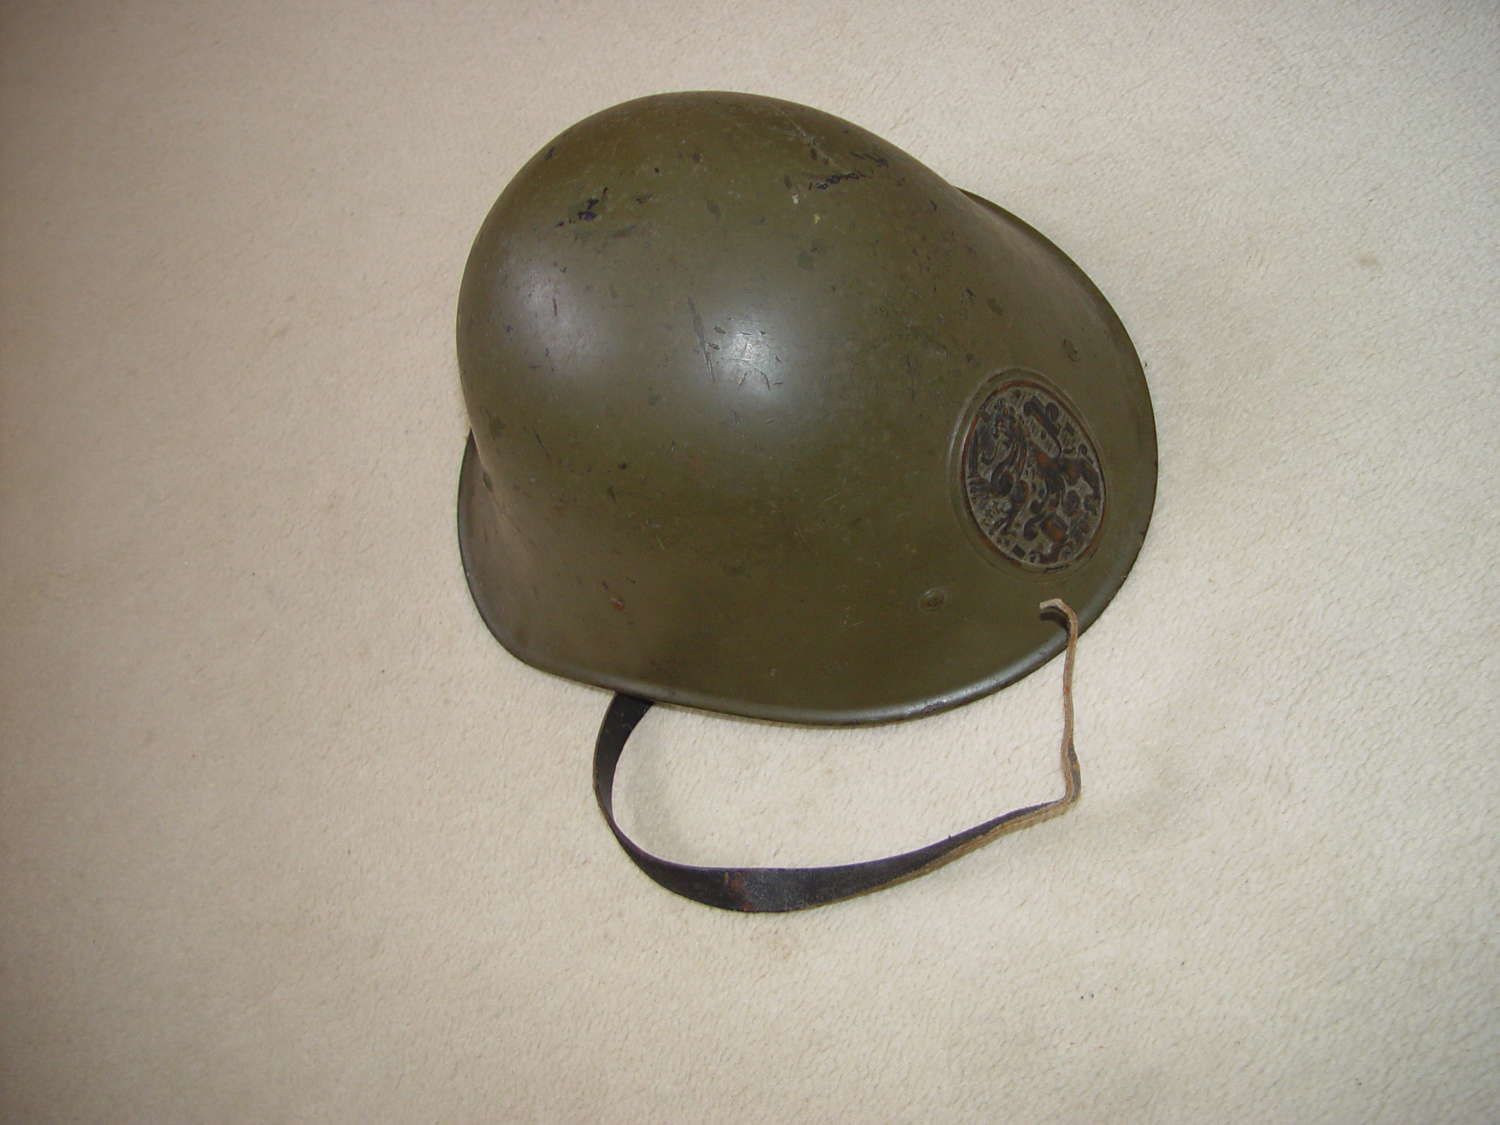 Dutch Model 34 helmet